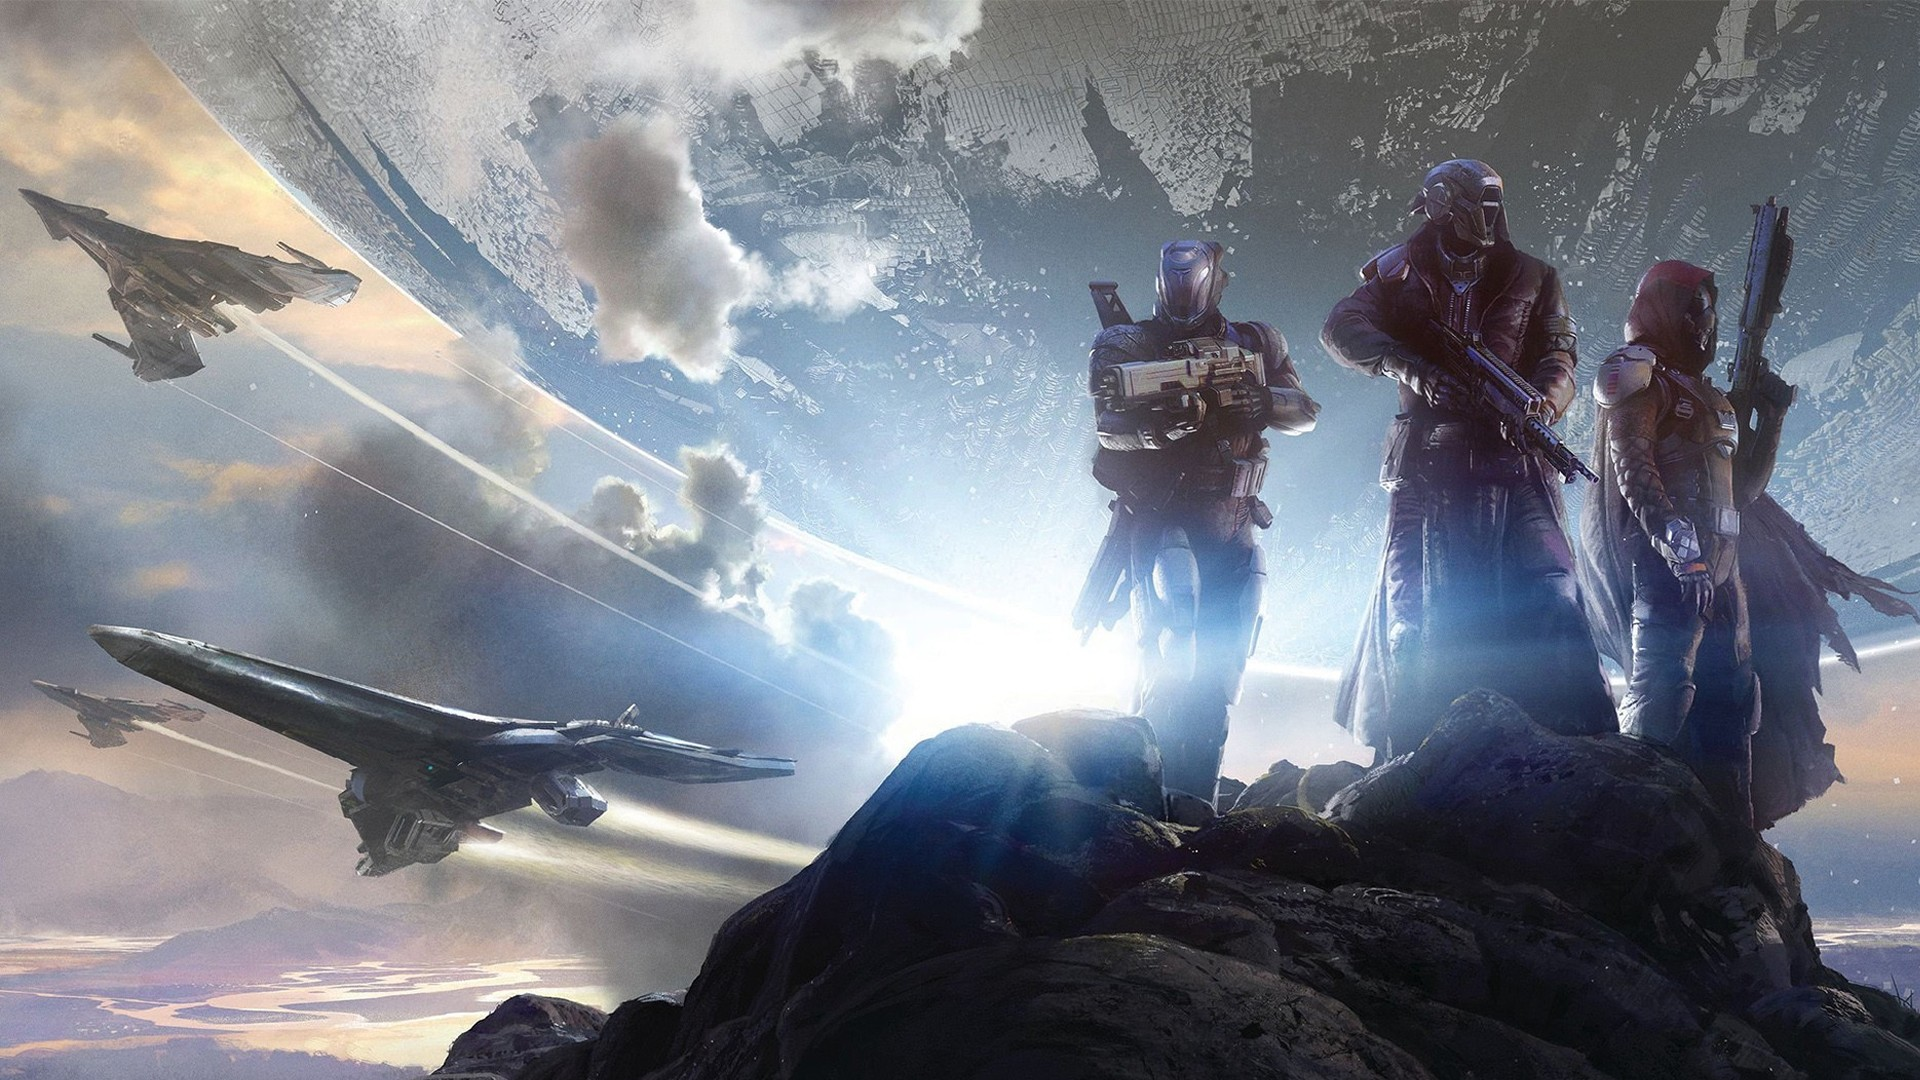 Destiny jpg library library Destiny' Wins BAFTA For Best Game Of 2014 jpg library library